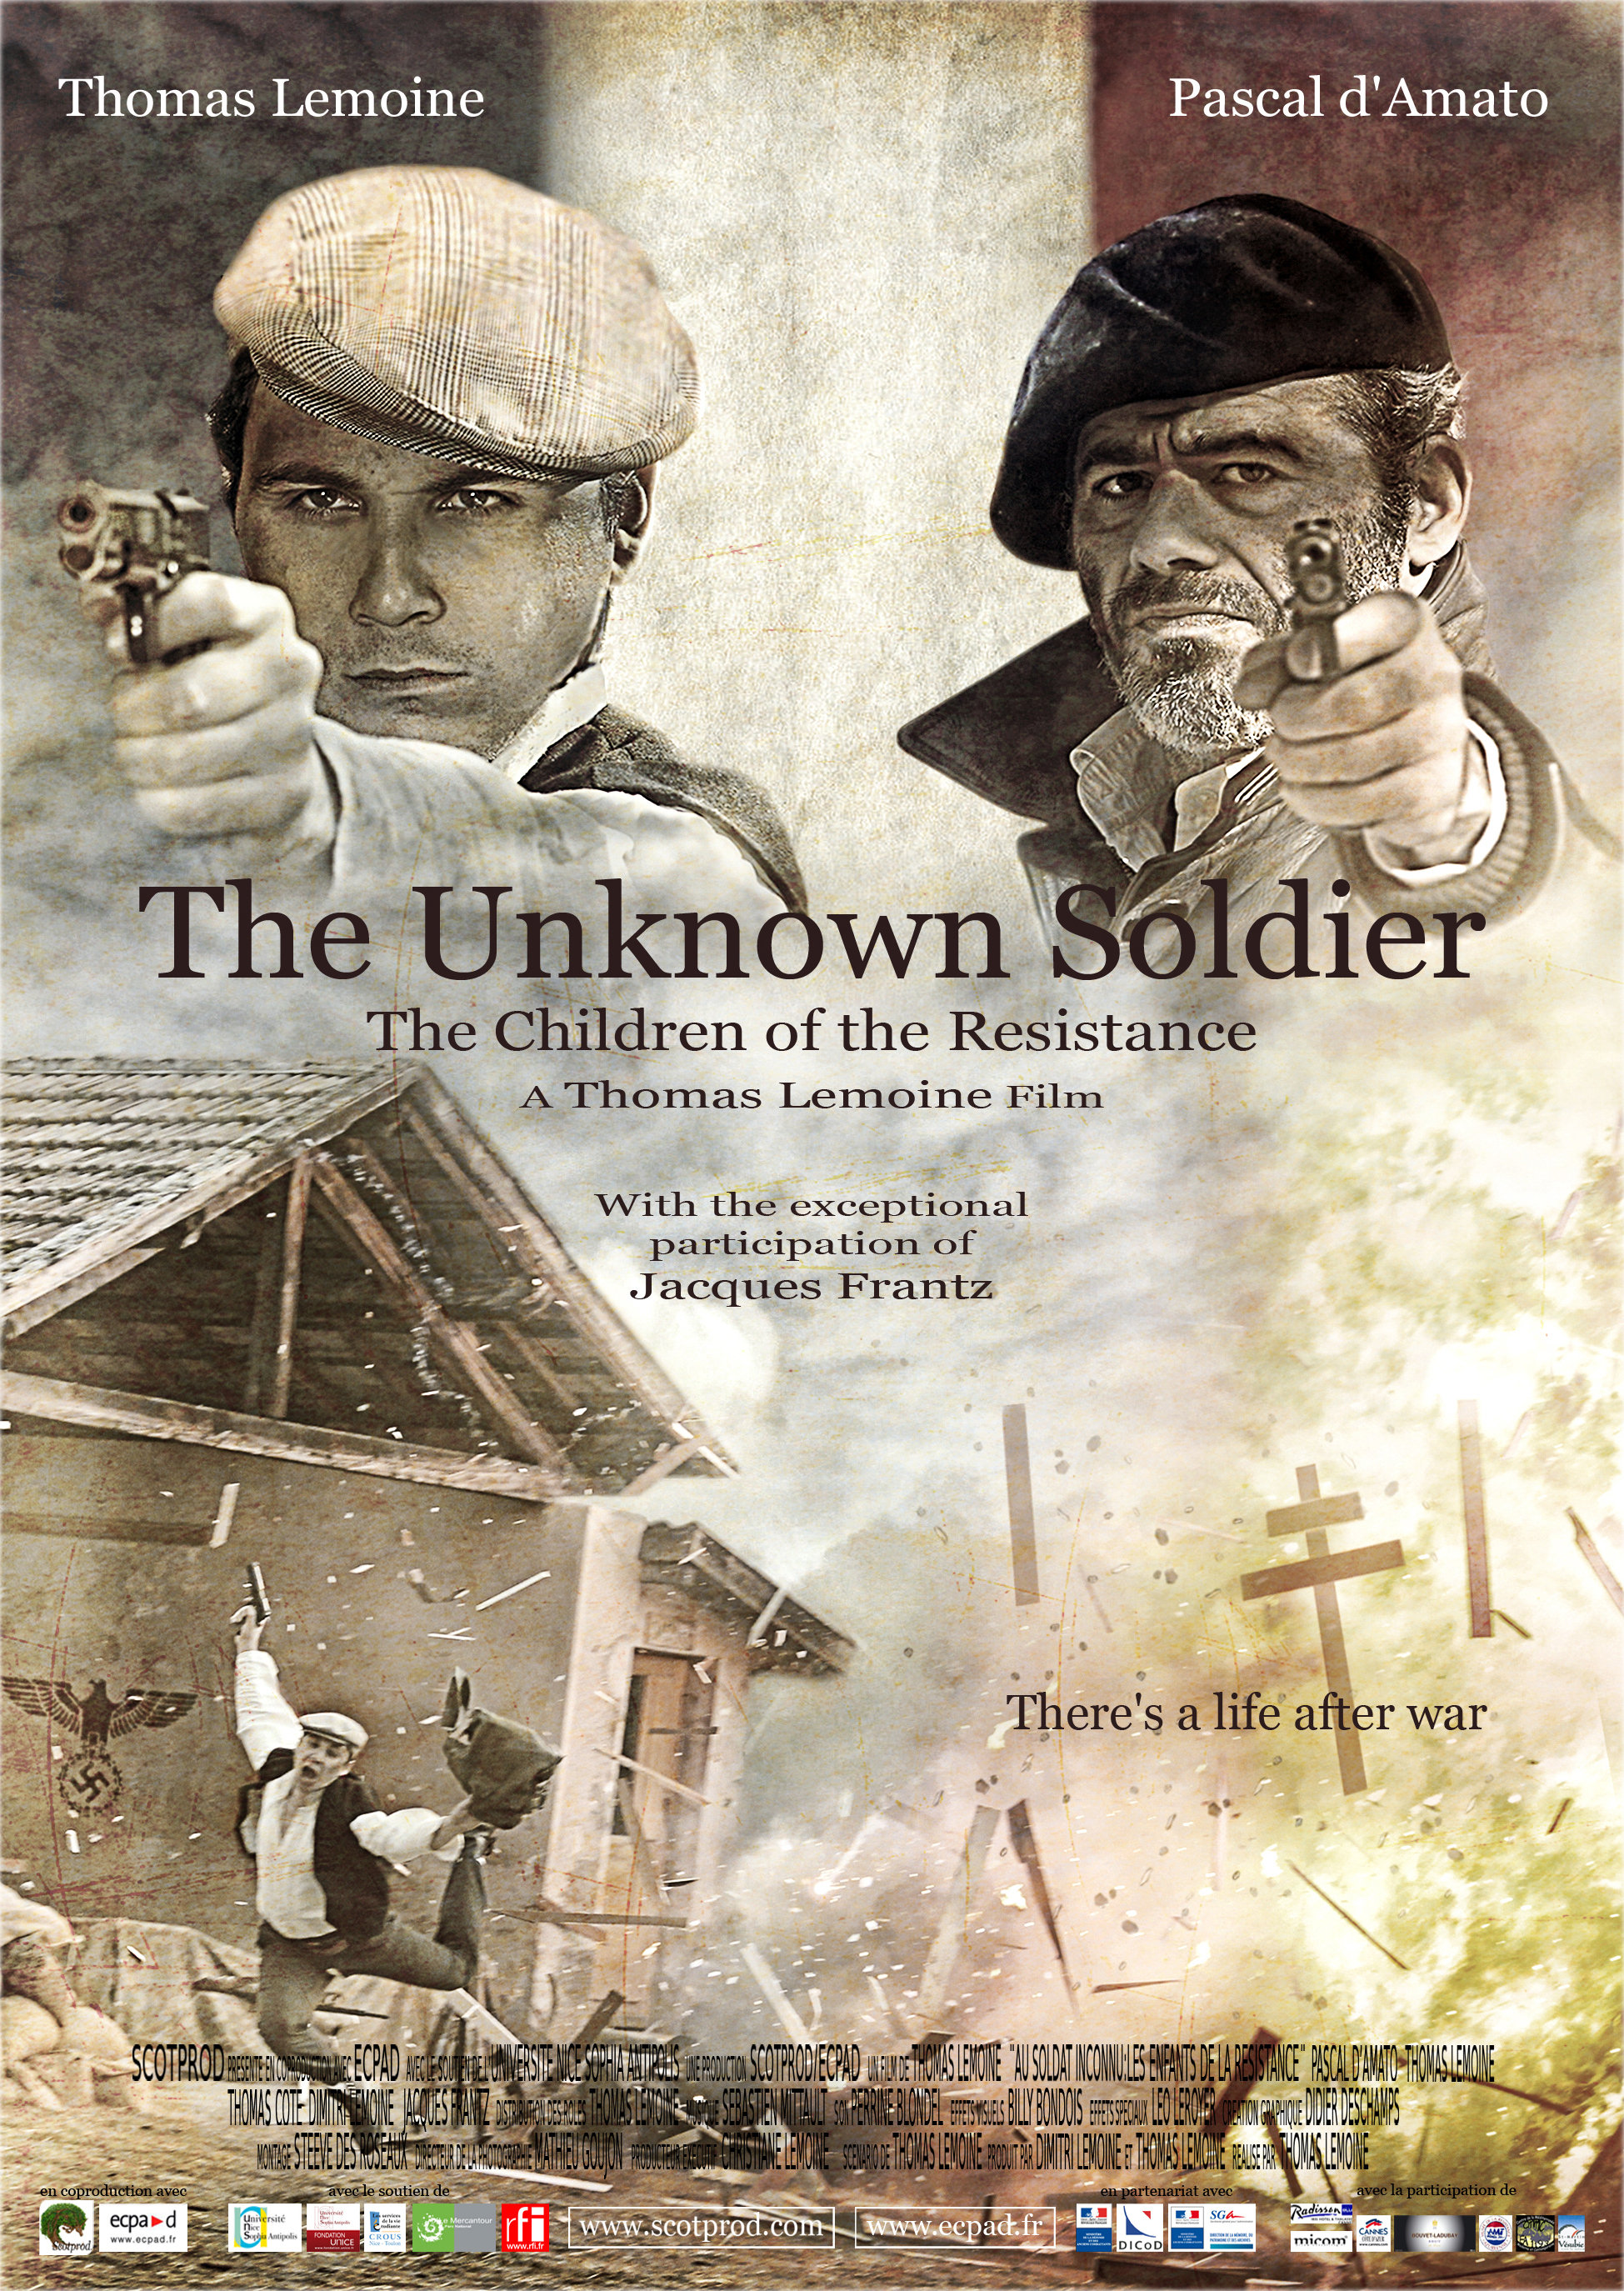 The Unknown Soldier: The Children of the Resistance